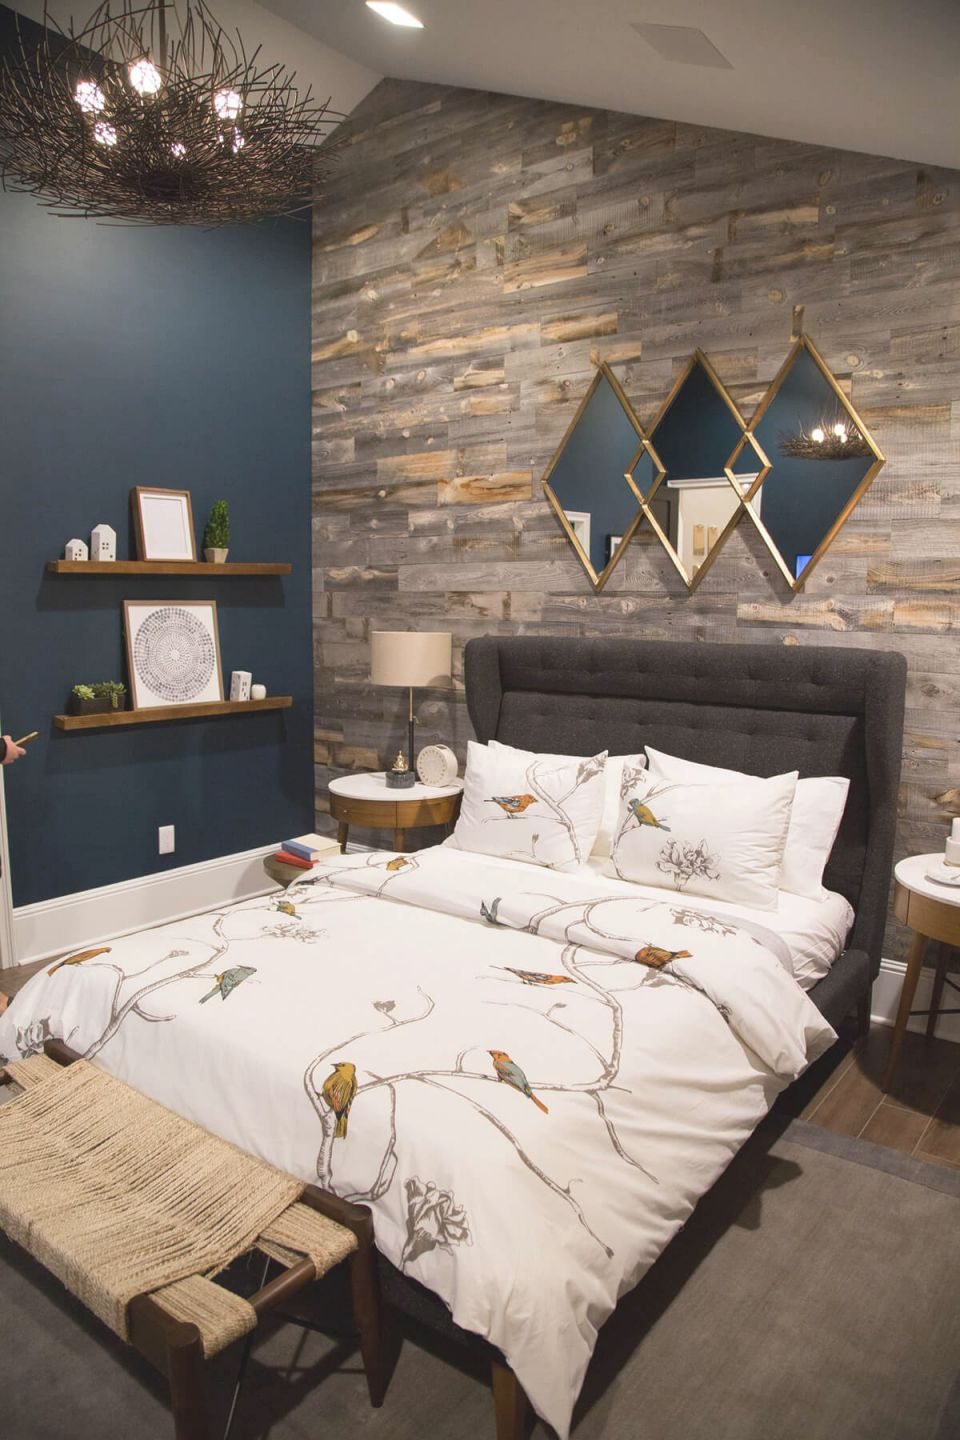 25+ Best Bedroom Wall Decor Ideas And Designs For 2020 with Wall Decoration Ideas For Bedrooms